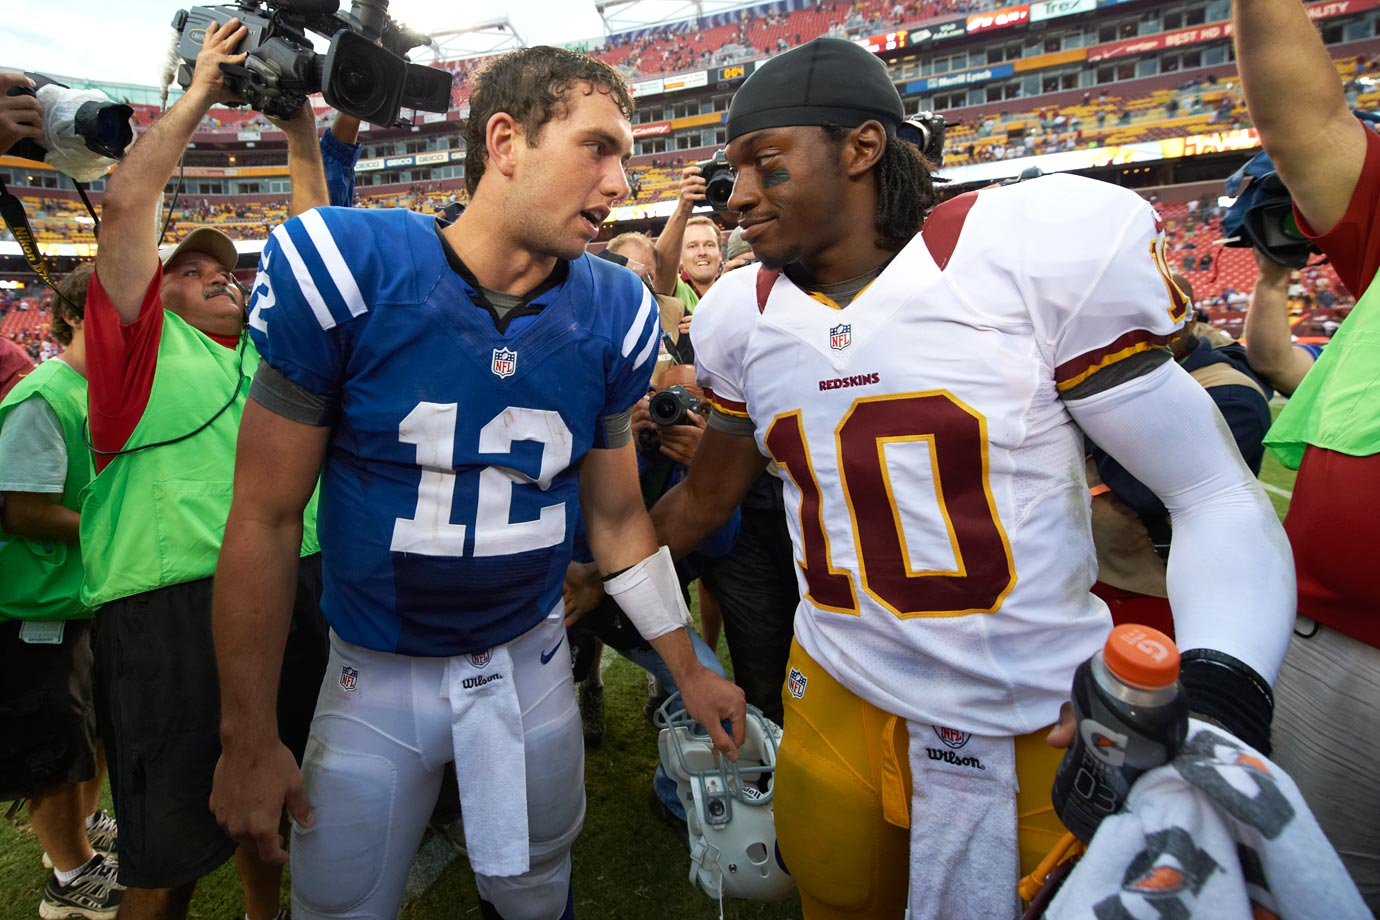 2012: 1—Andrew Luck (Indianapolis Colts),  2—Robert Griffin III (Washington Redskins)